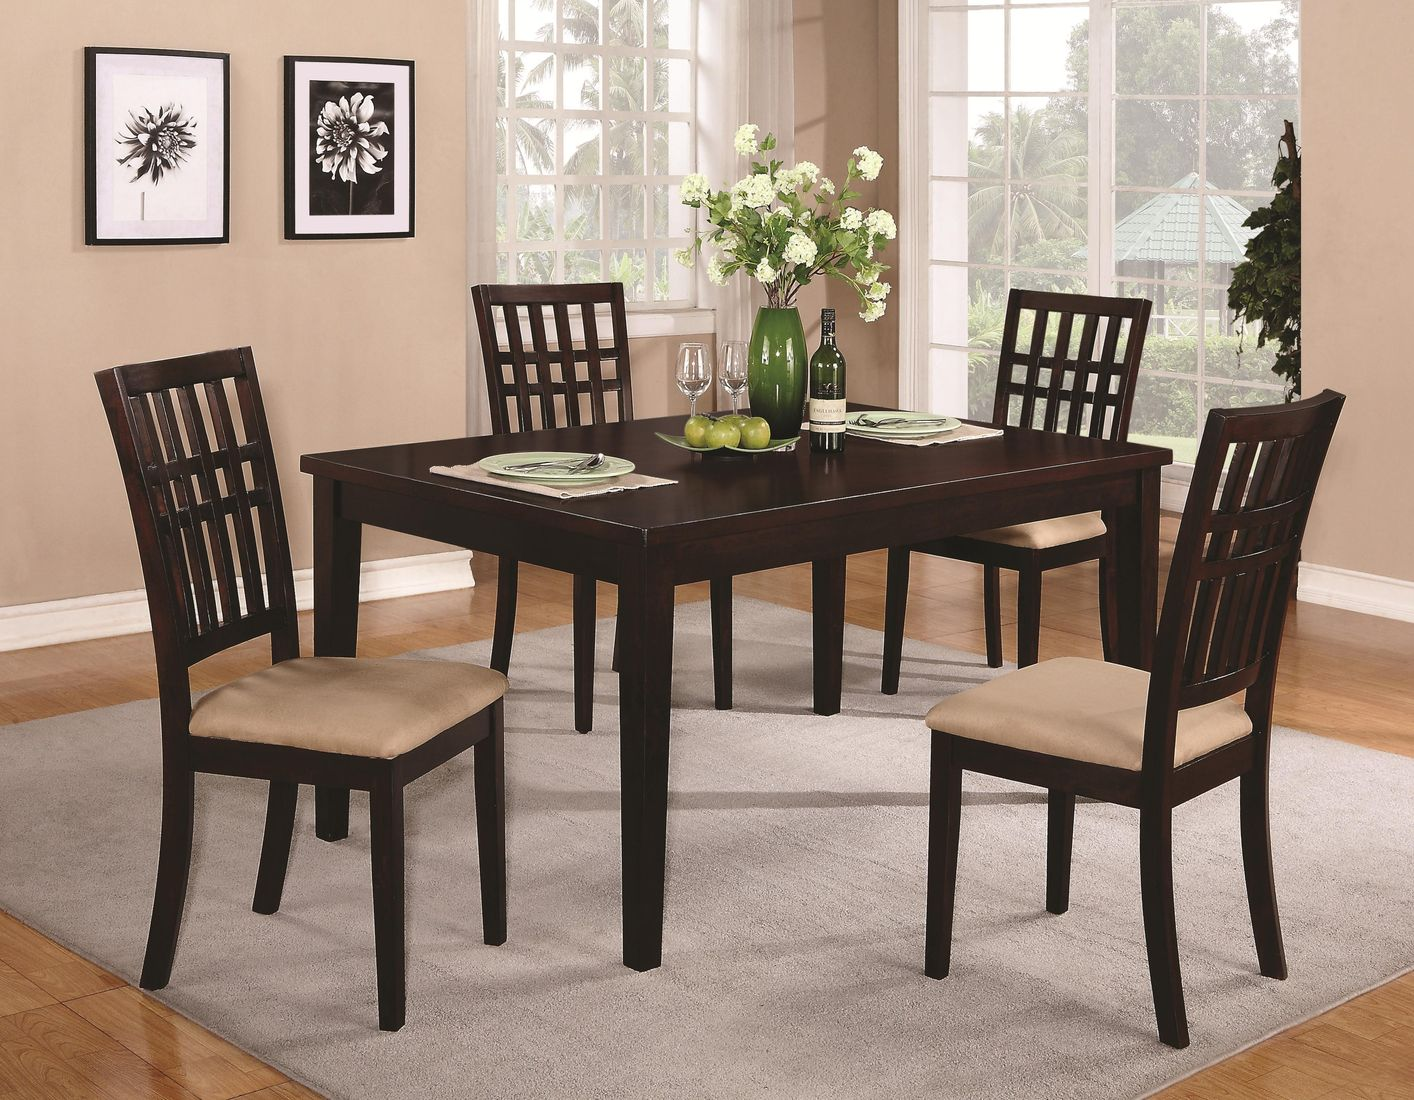 Brandt Dark Cherry Wood Dining Table  StealASofa Furniture Outlet Los Angeles CA